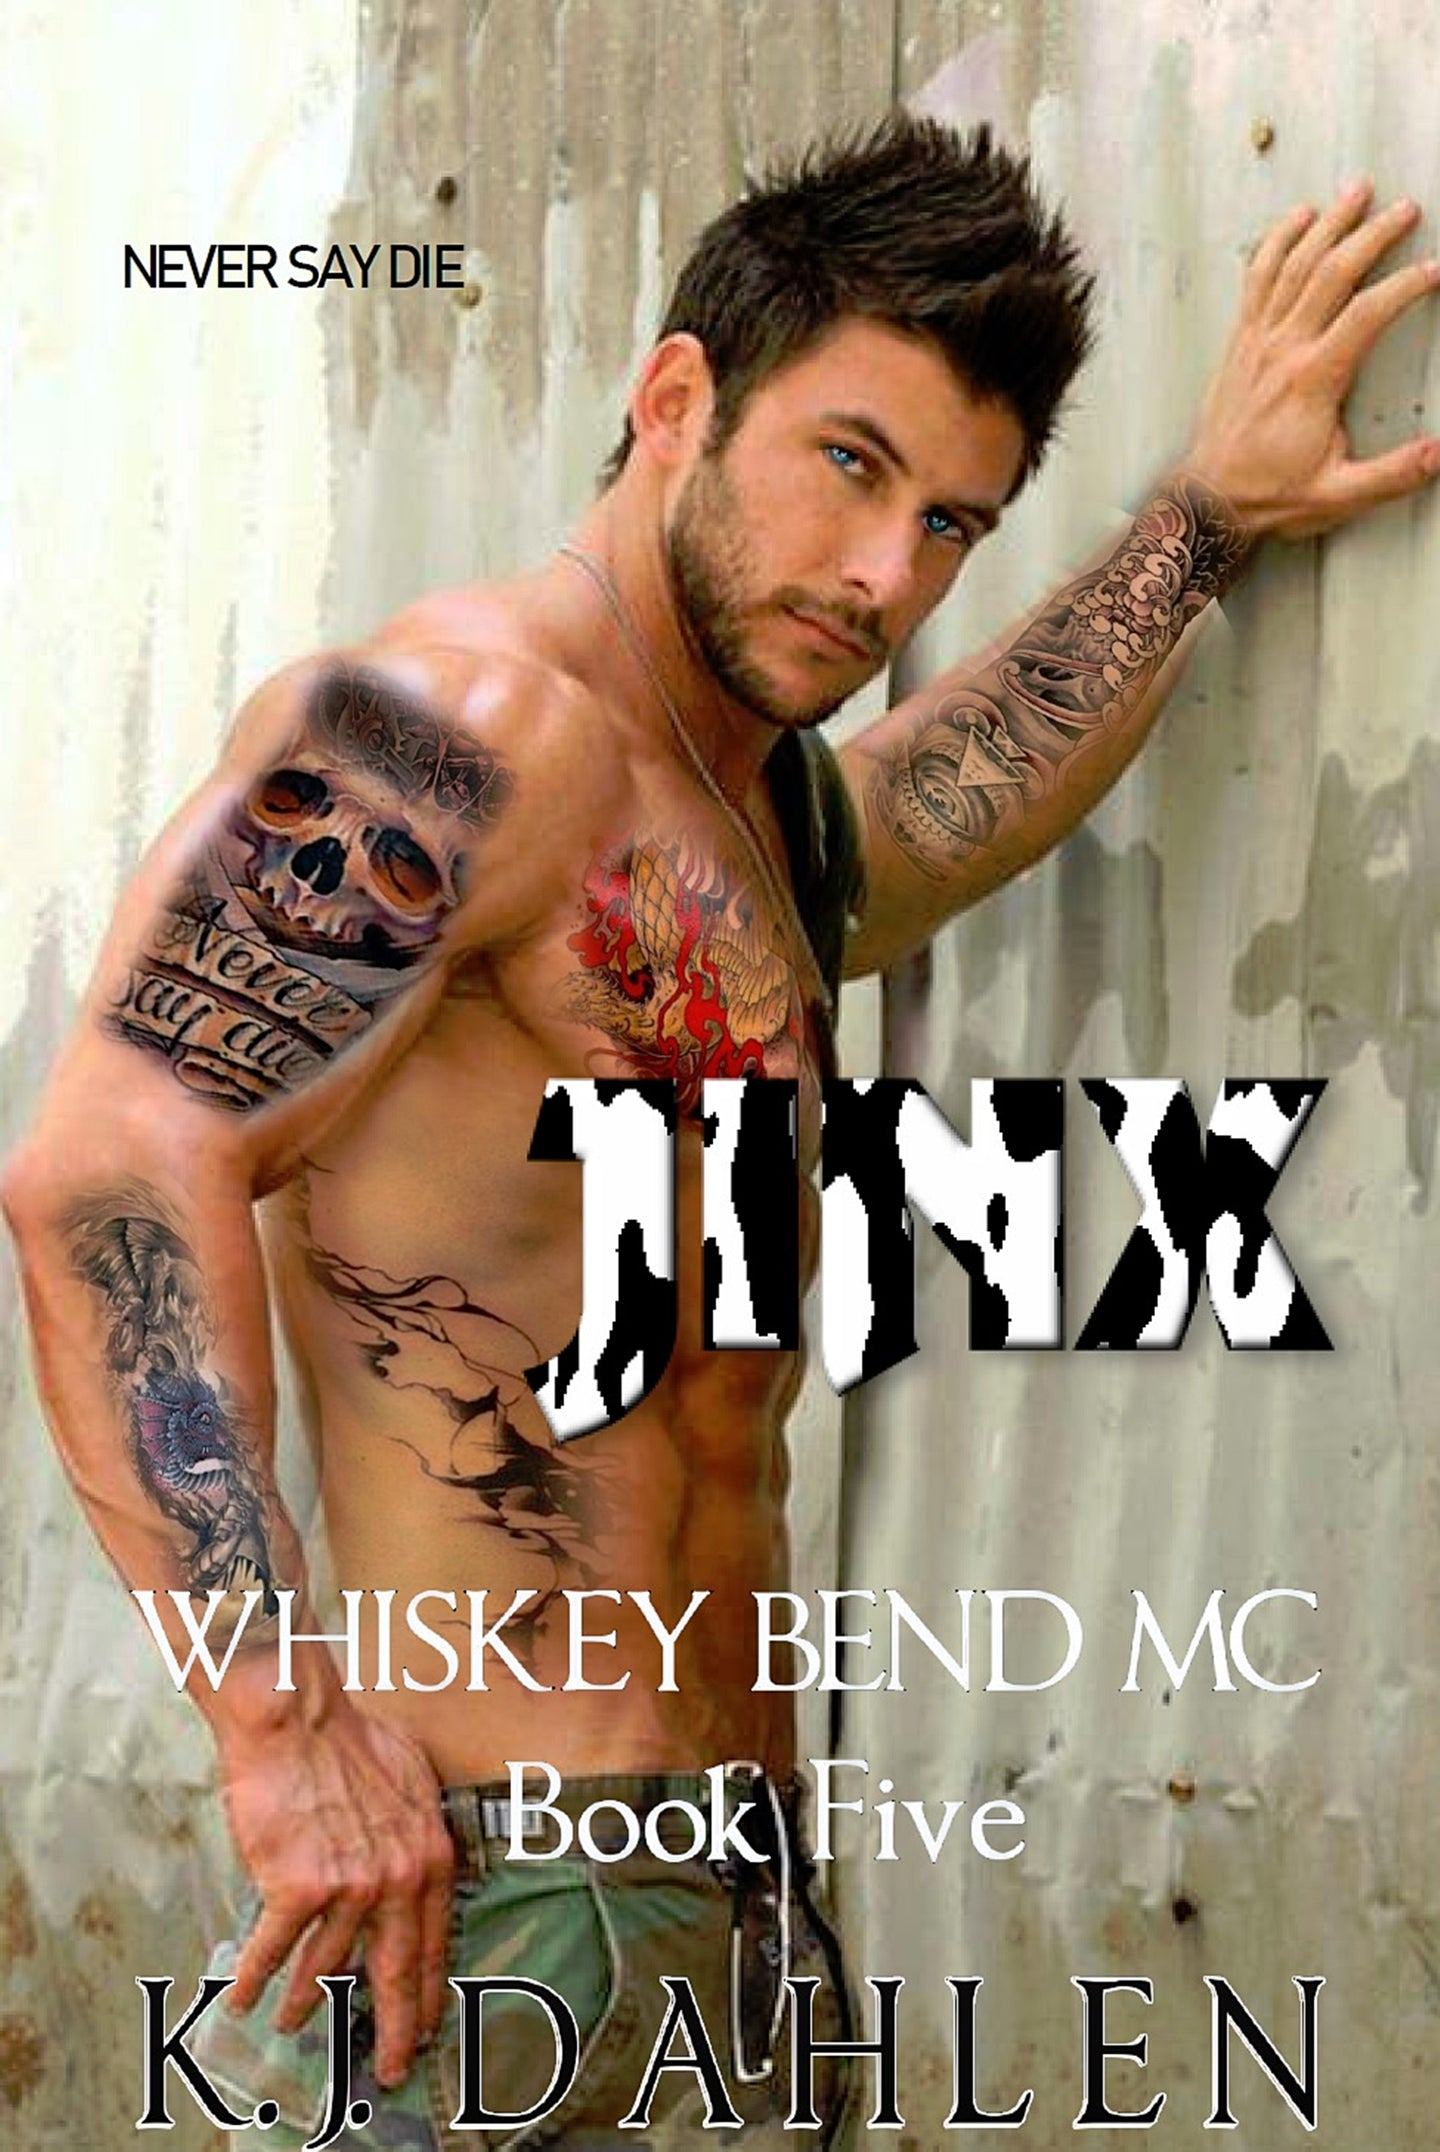 Jinx-Book Five Whiskey Bend MC-single